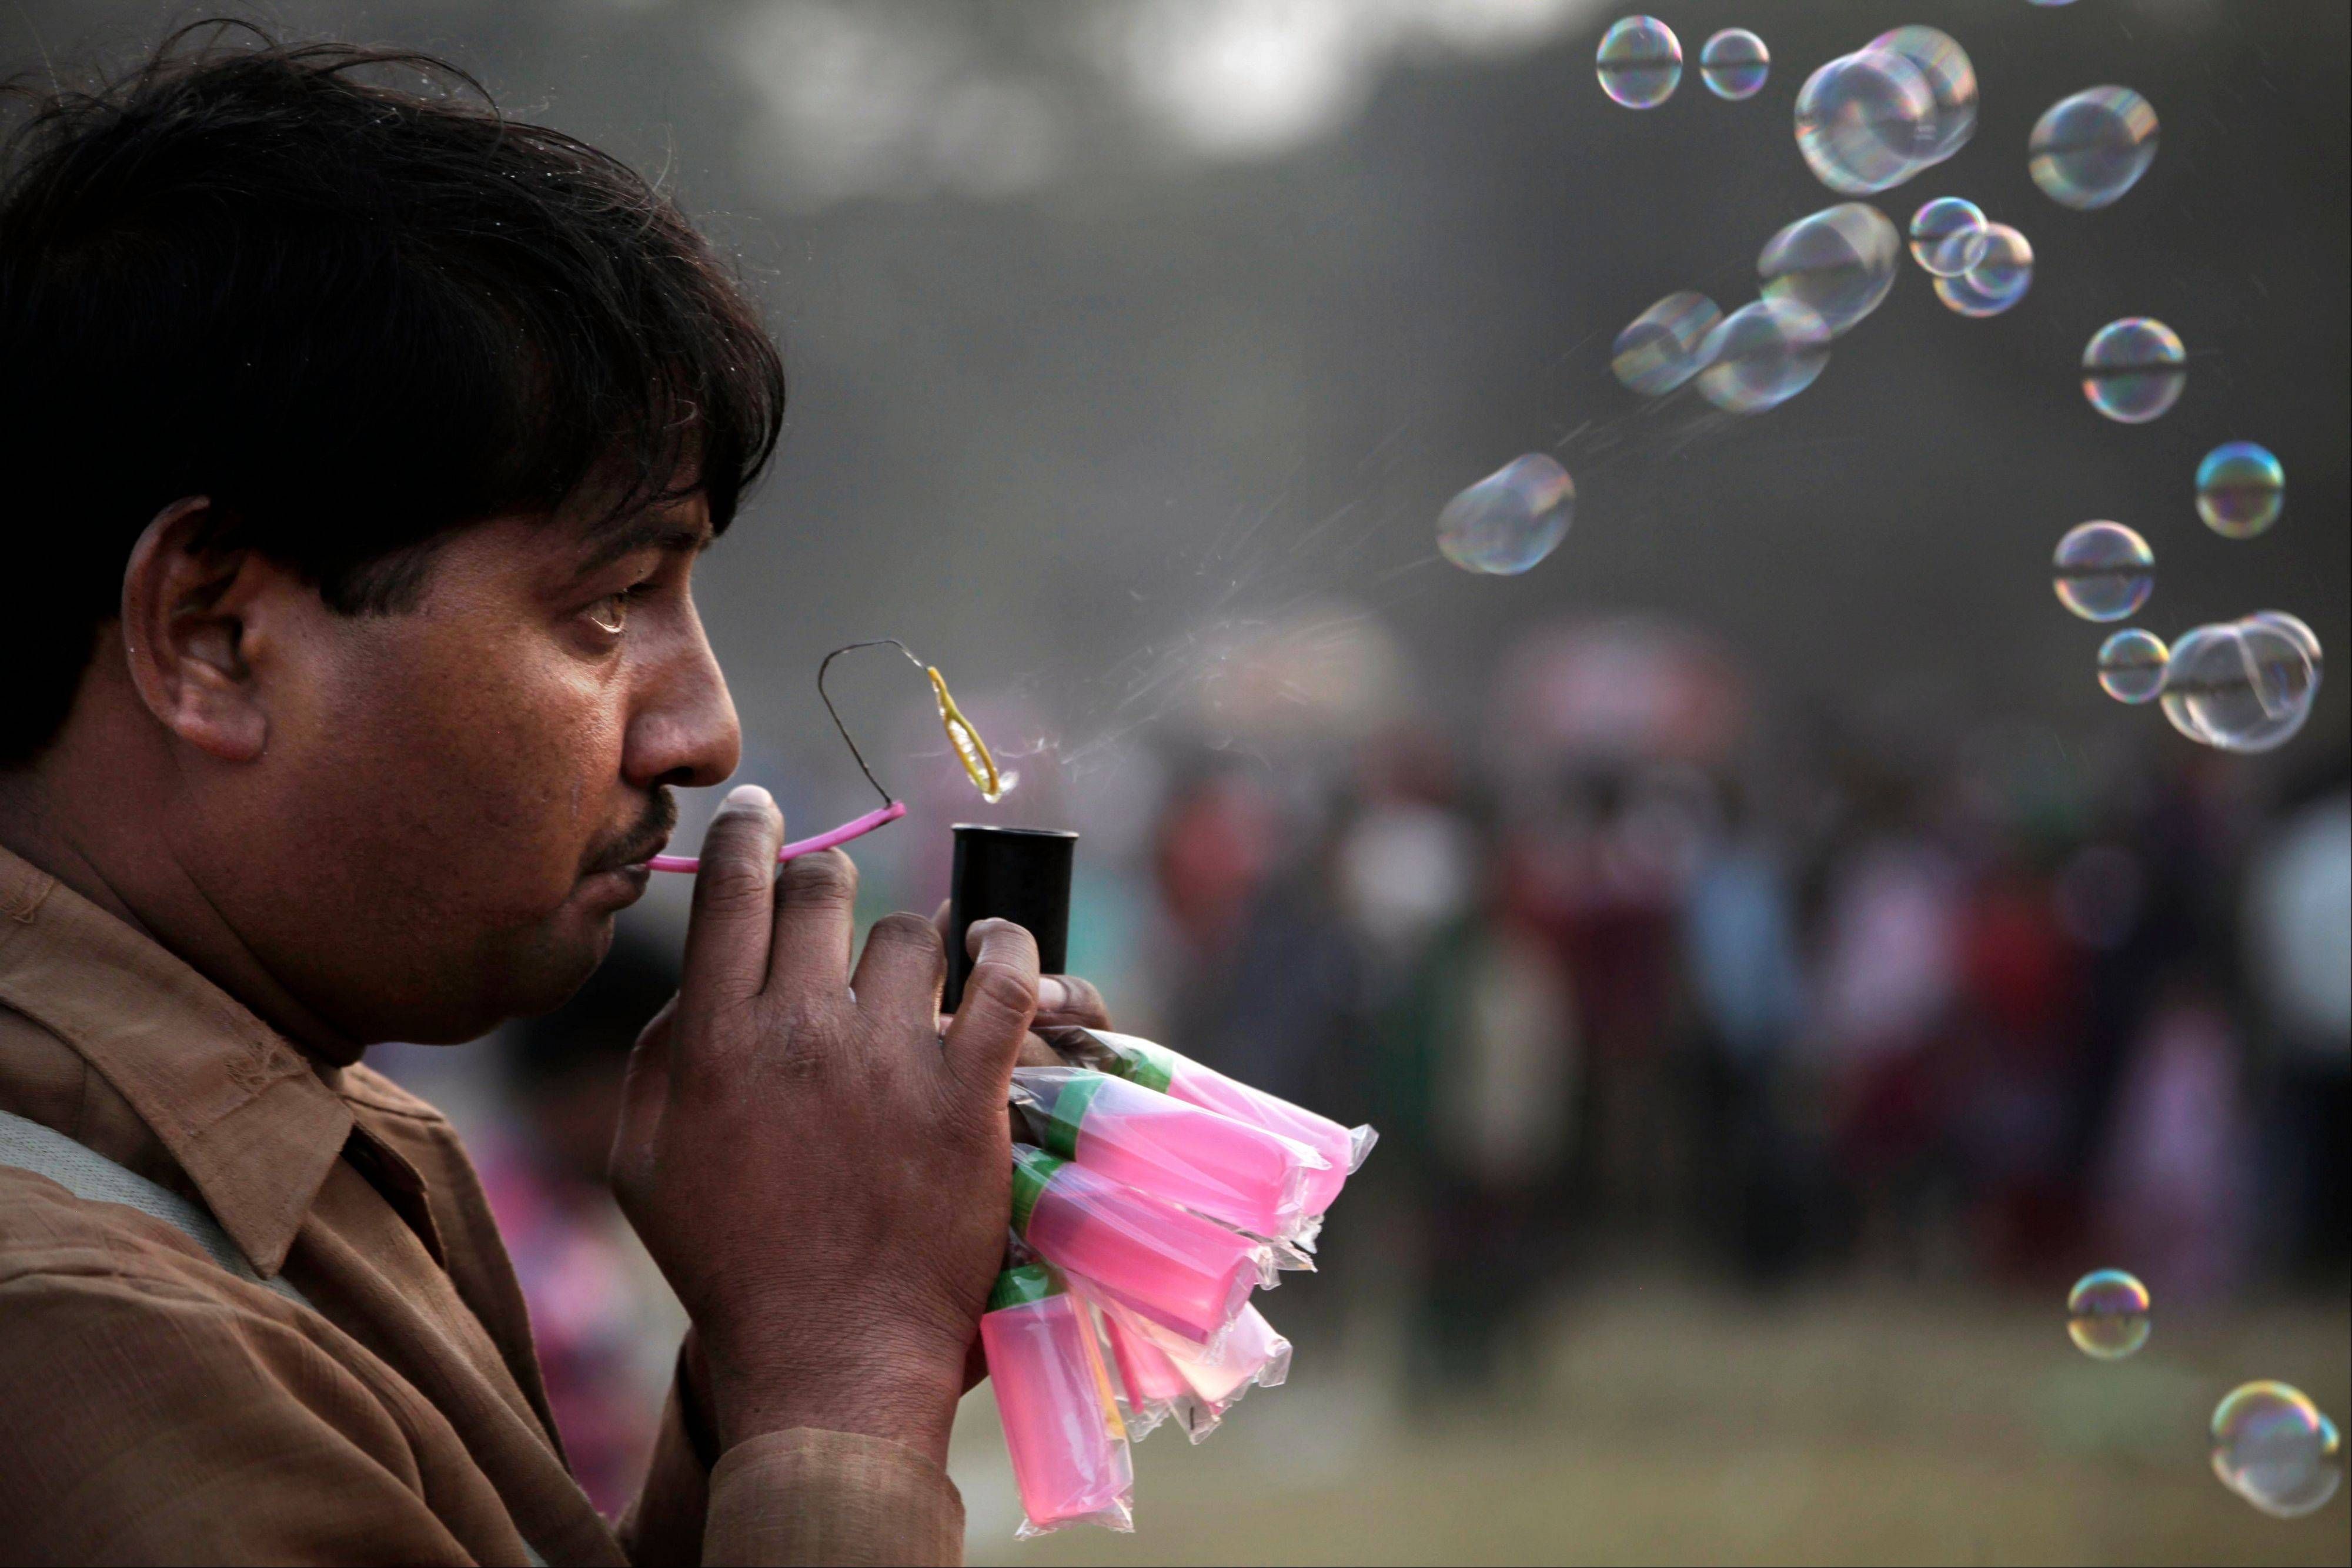 An Indian vendor blows soap bubbles to attract customers at a park in Kolkata, India, Wednesday, Jan. 1, 2014. Many people visited the public park on the first day of the New Year.